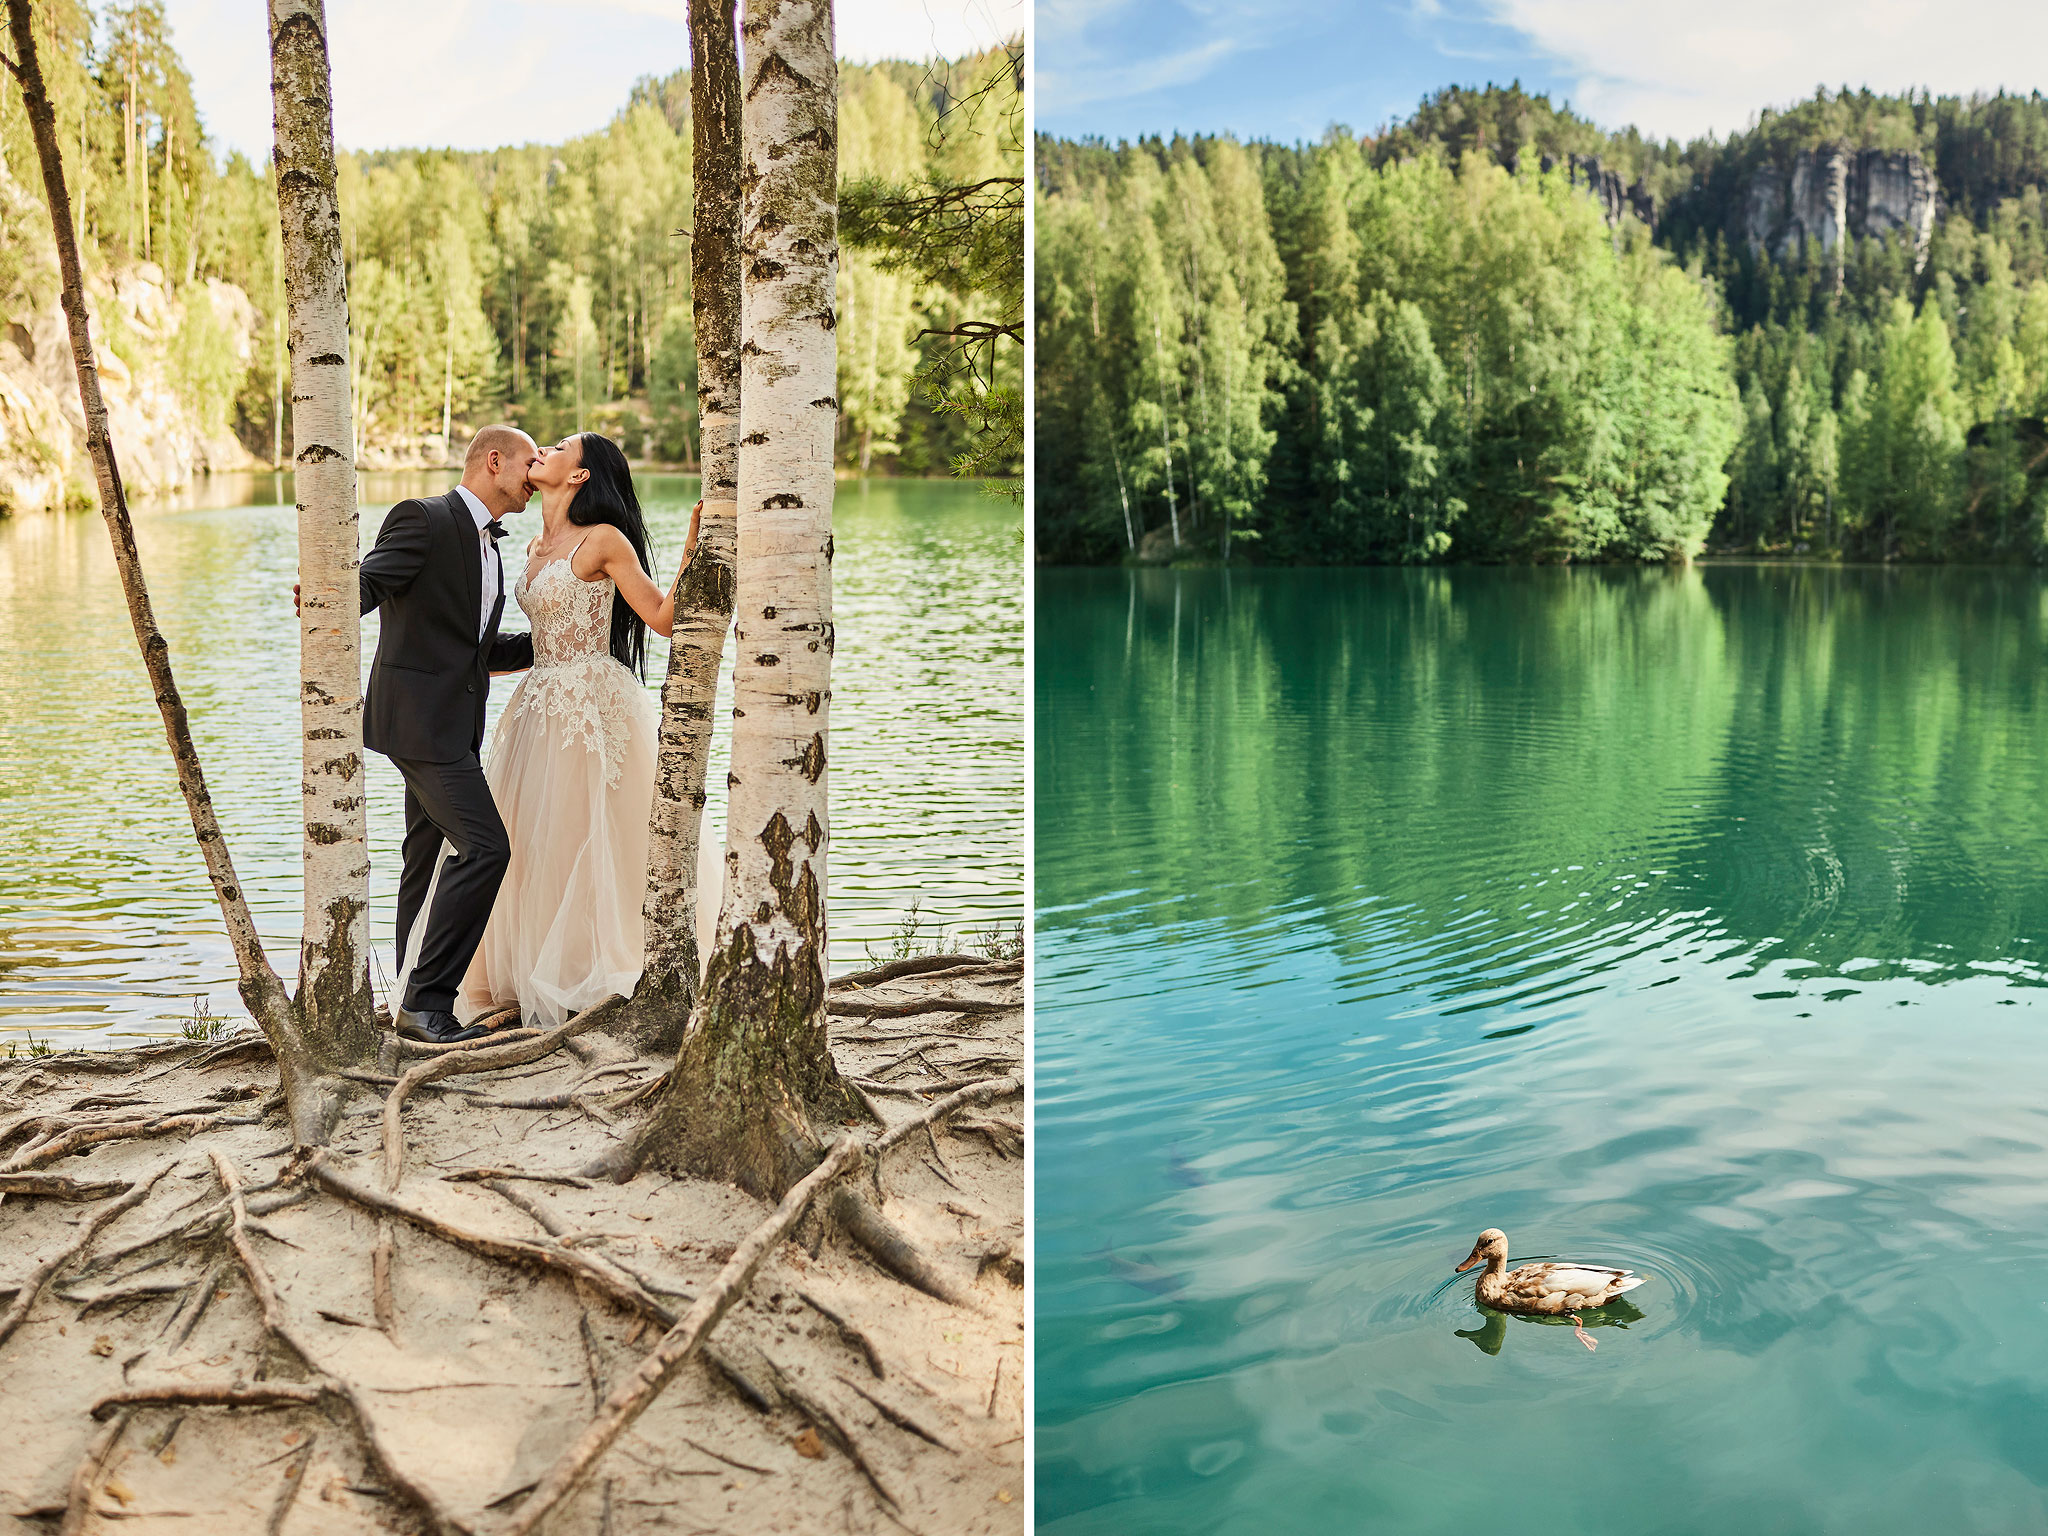 004 emerald lake wedding